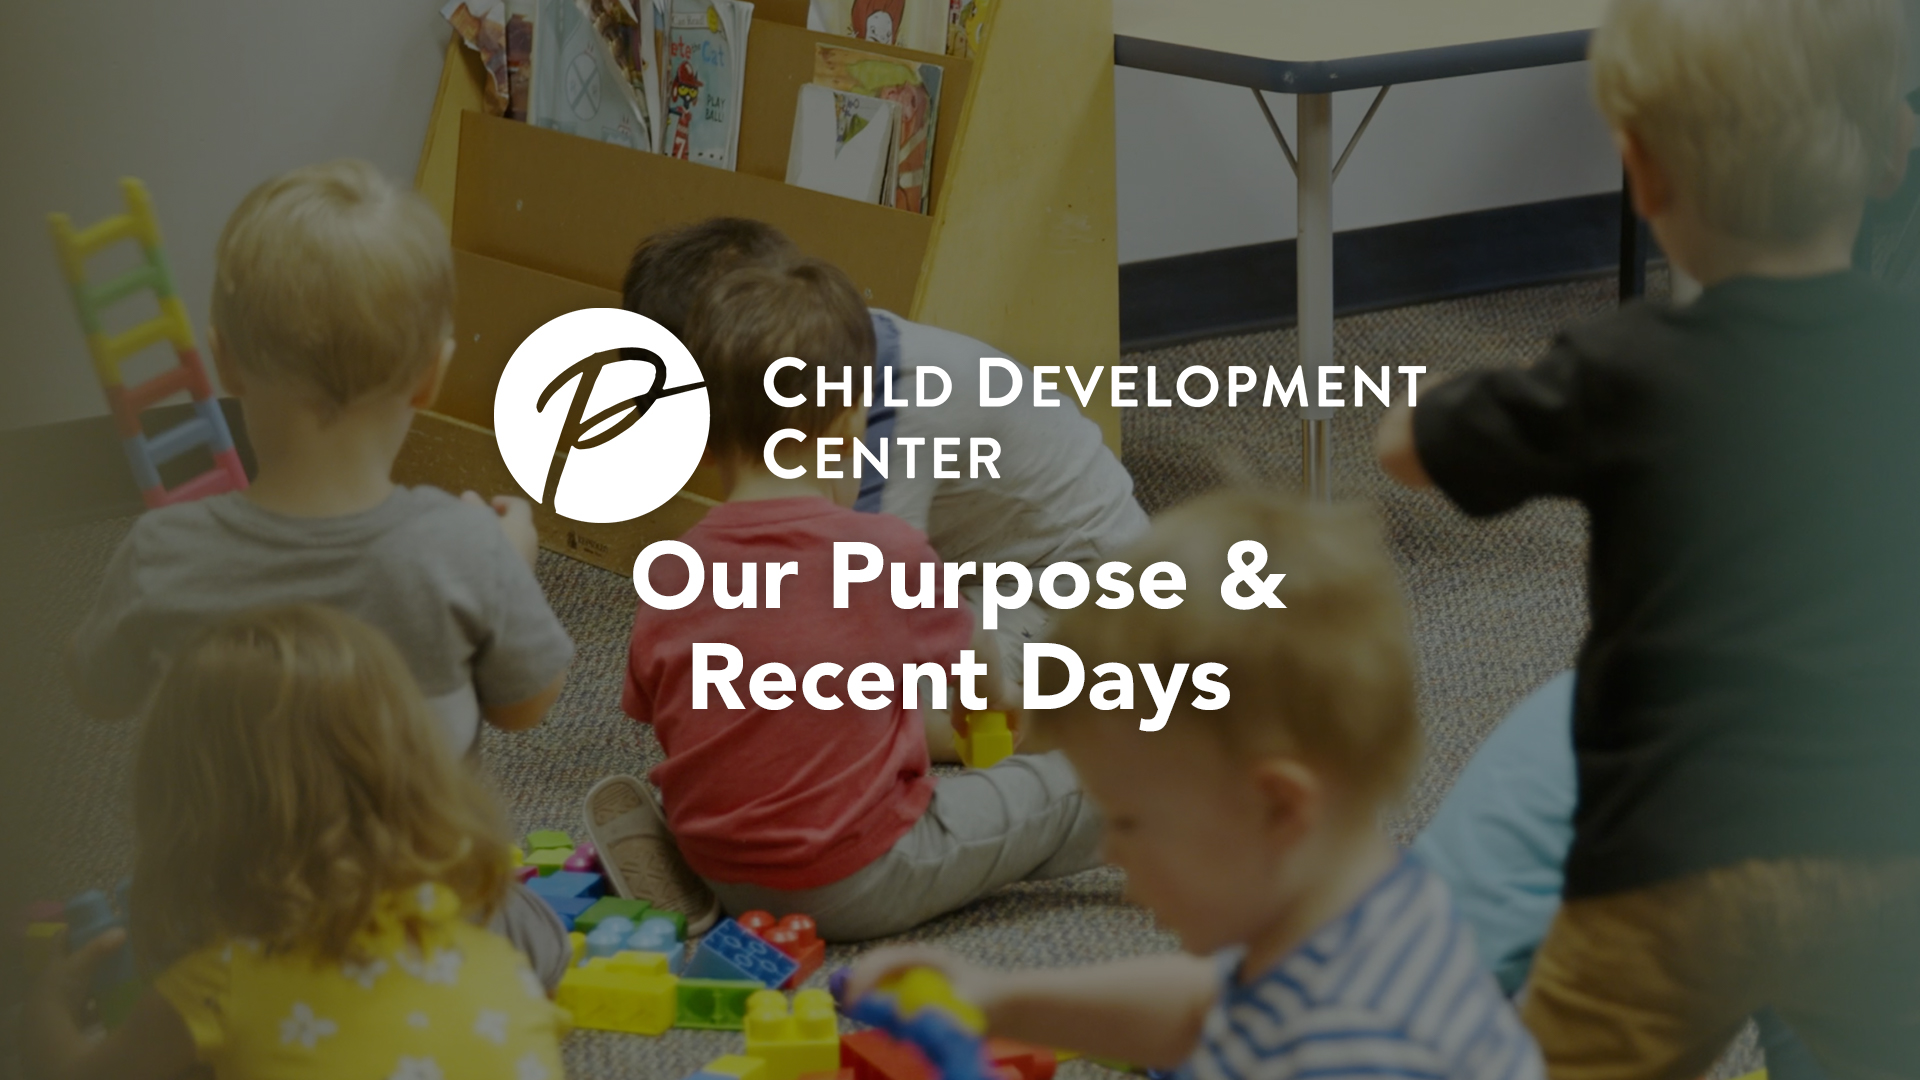 Video – Pioneer Drive Child Development Center Video